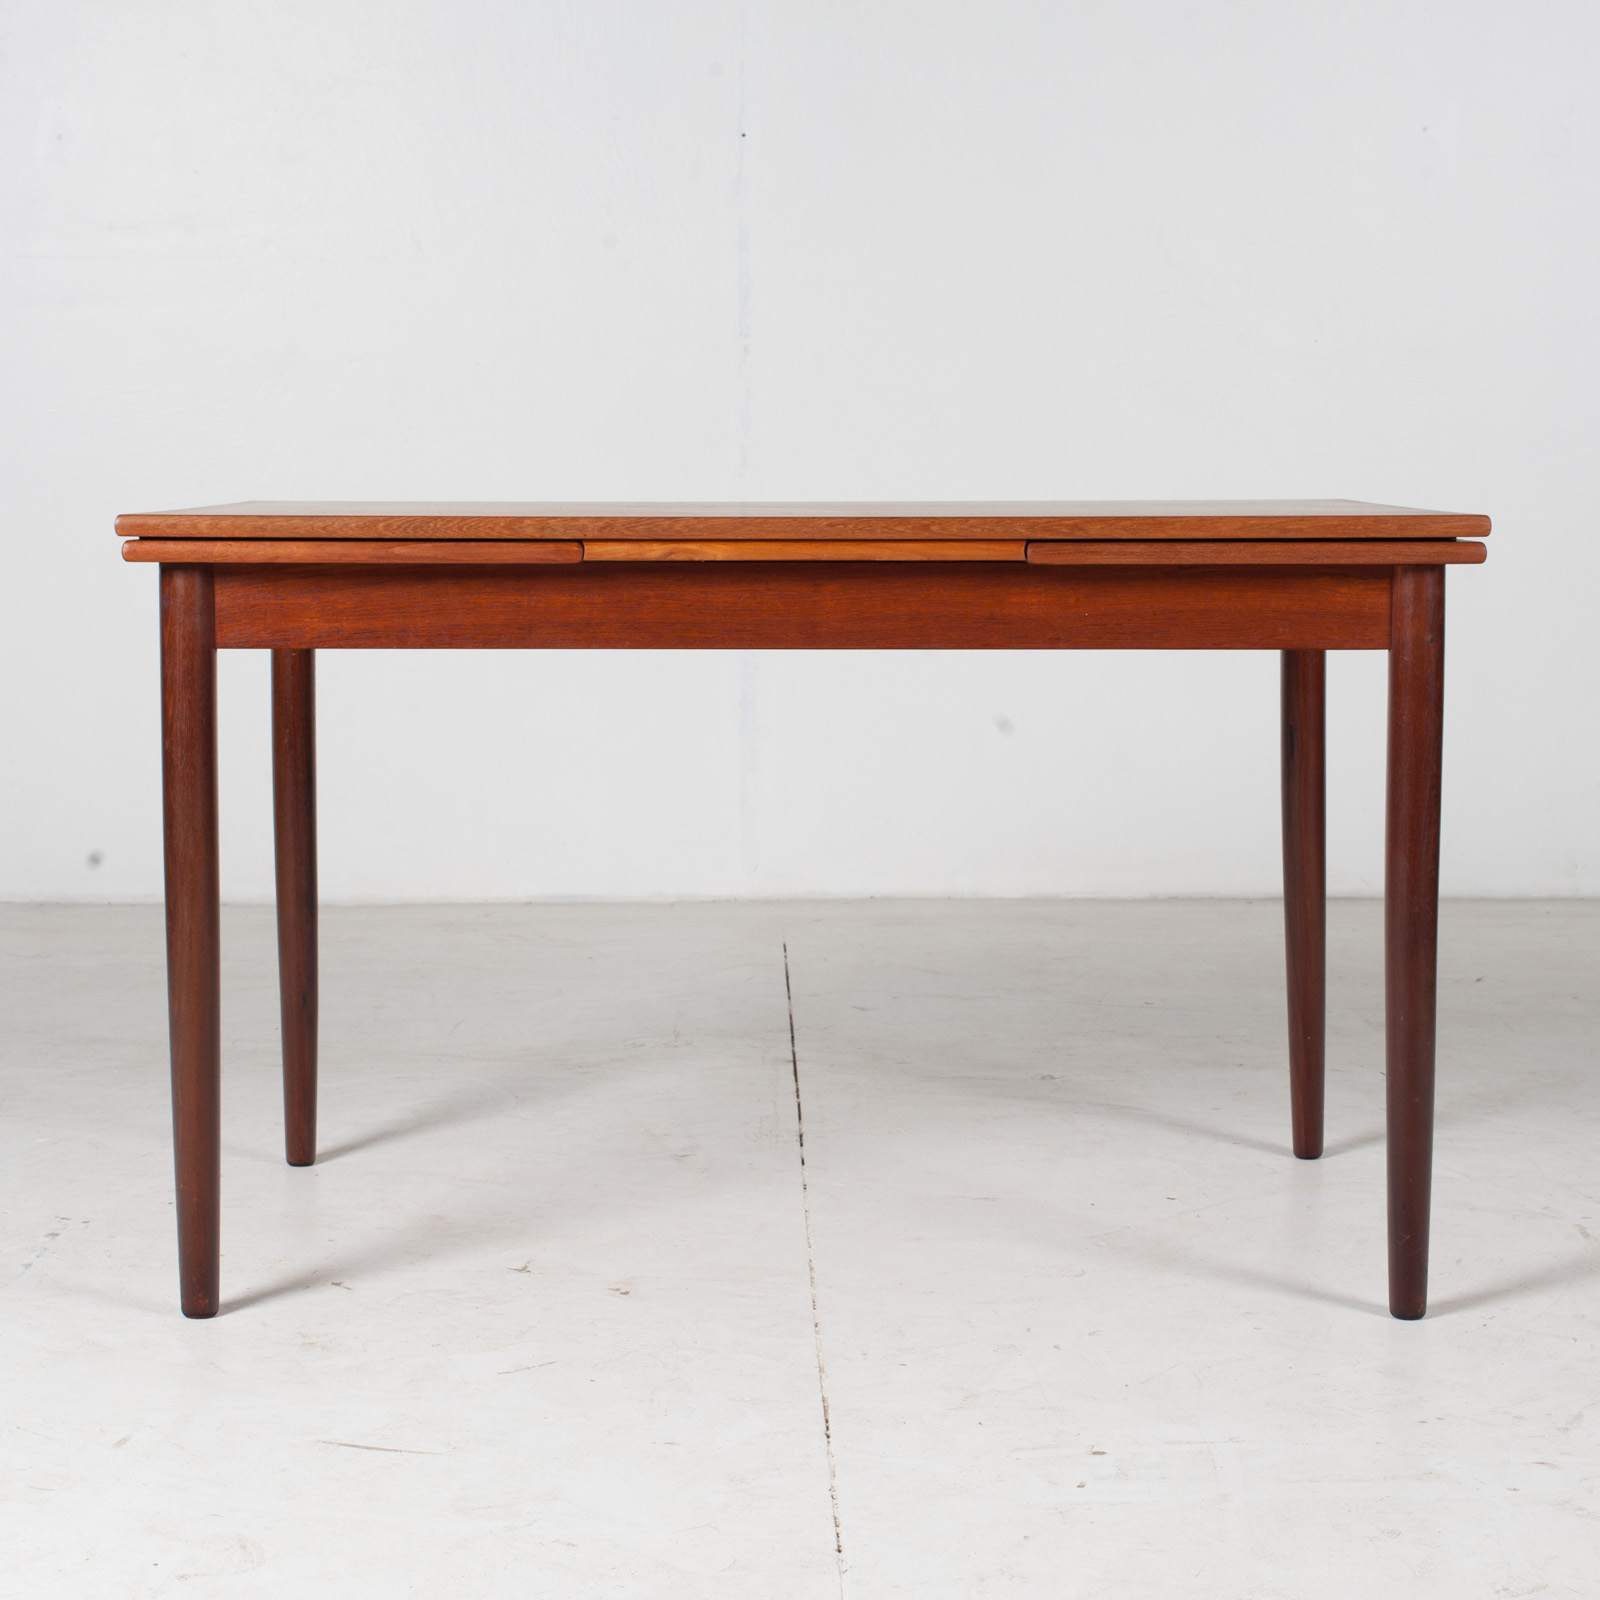 Extendable Rectangular Dining Table In Teak With Solid Edge, 1960s, Denmark1